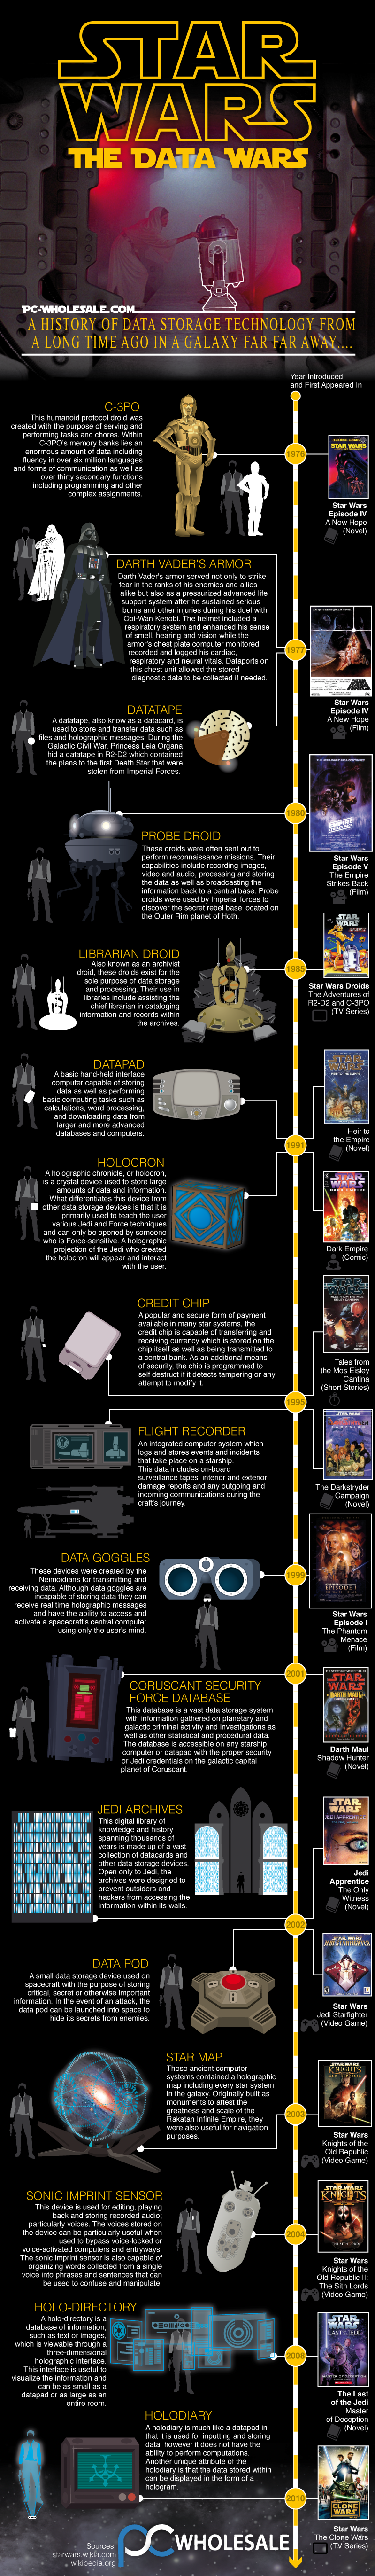 Star Wars: The Data Wars Infographic